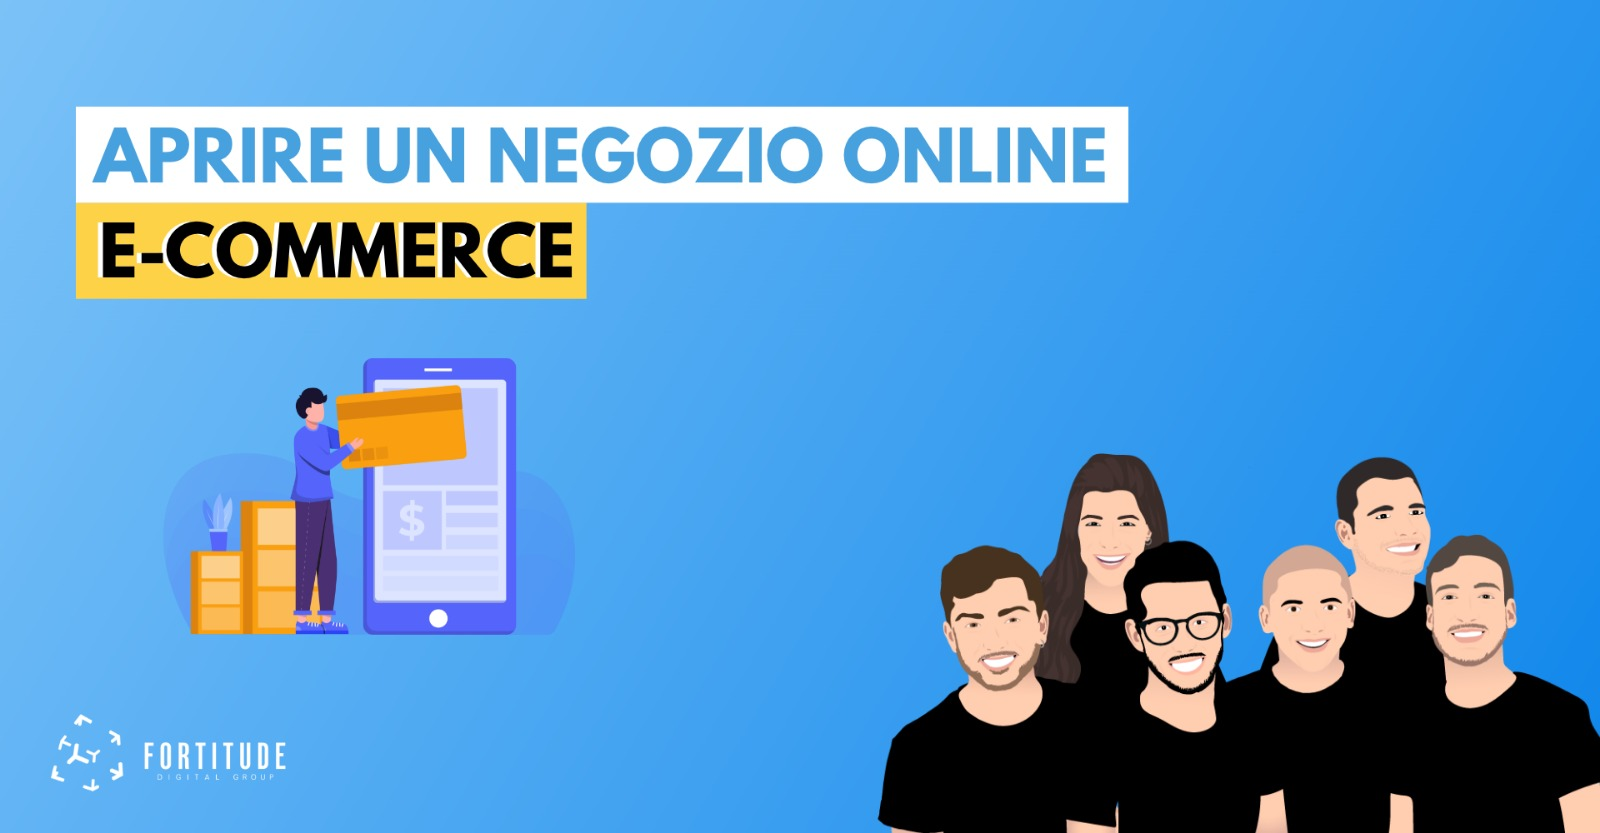 e-commerce_come_aprire_un_negozio_online_fortitude_digital_group